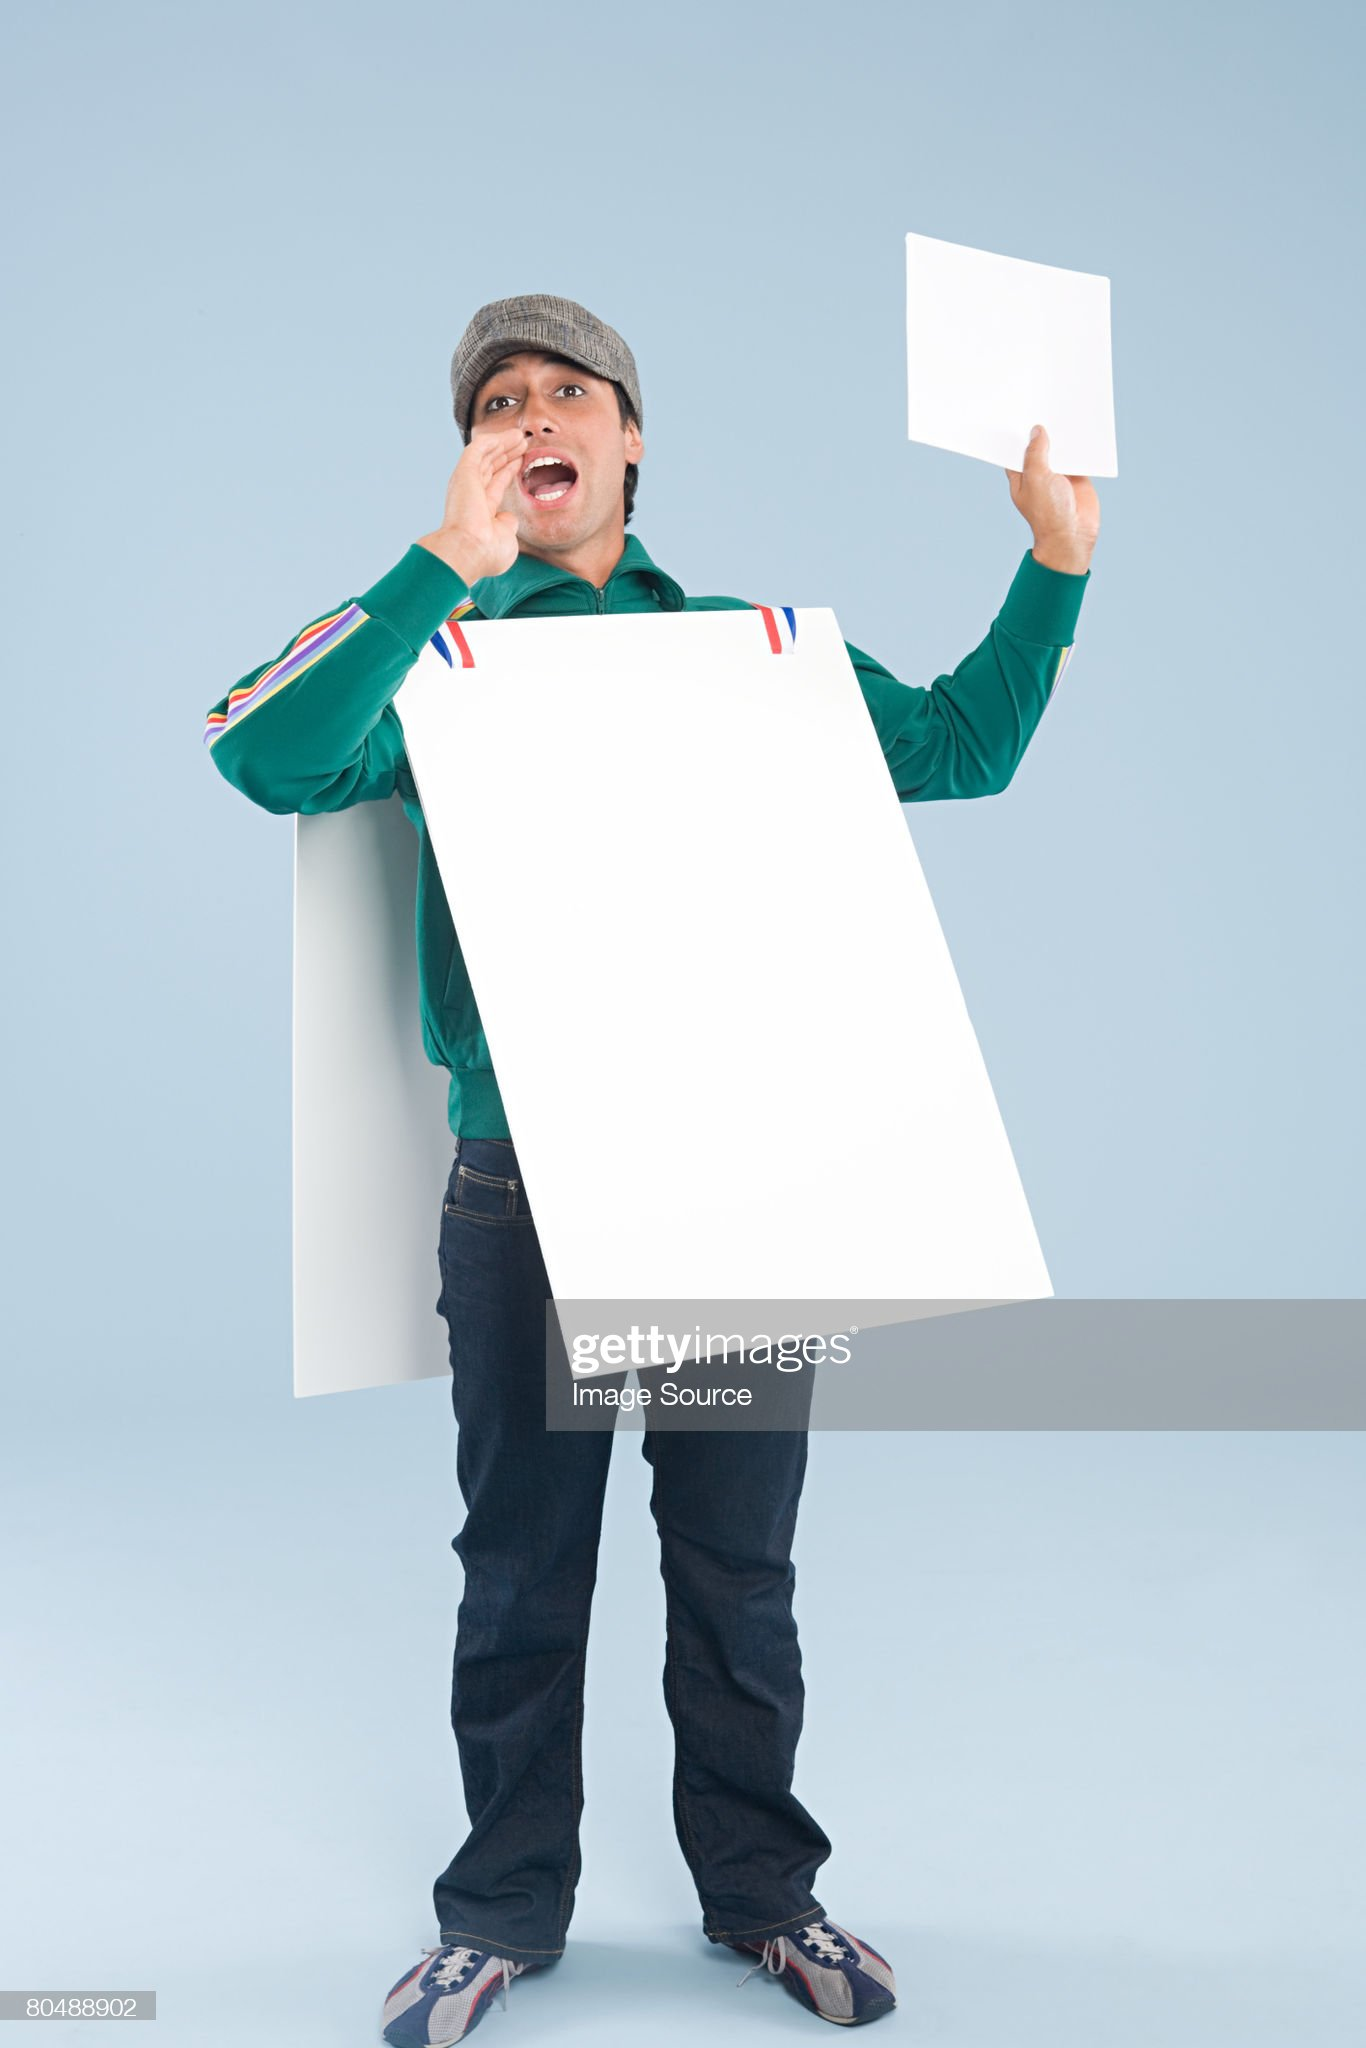 https://media.gettyimages.com/photos/man-wearing-a-sandwich-board-picture-id80488902?s=2048x2048